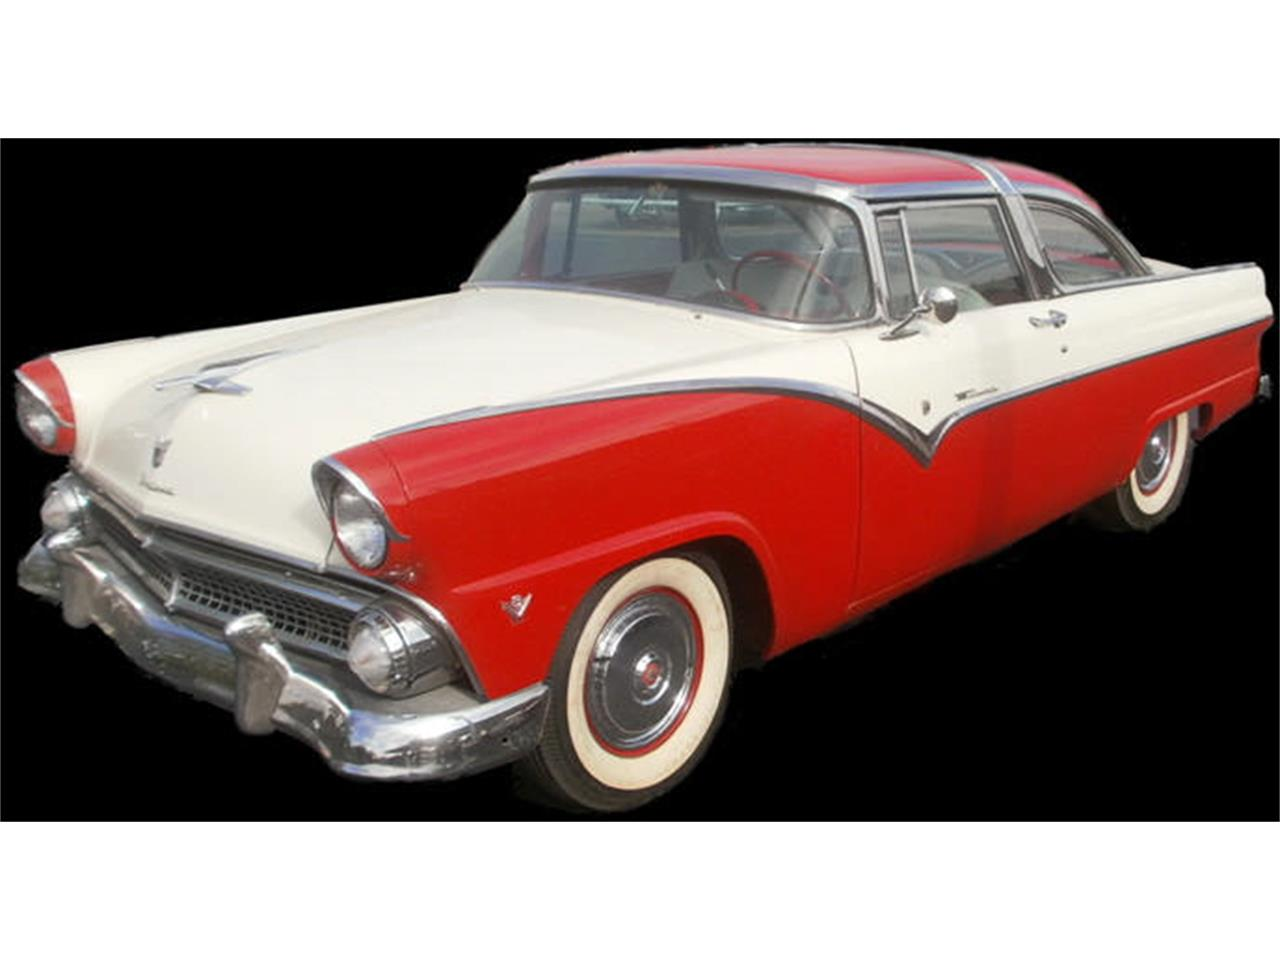 Large Picture of Classic 1955 Ford Crown Victoria located in Cleburne Texas - LG9Q